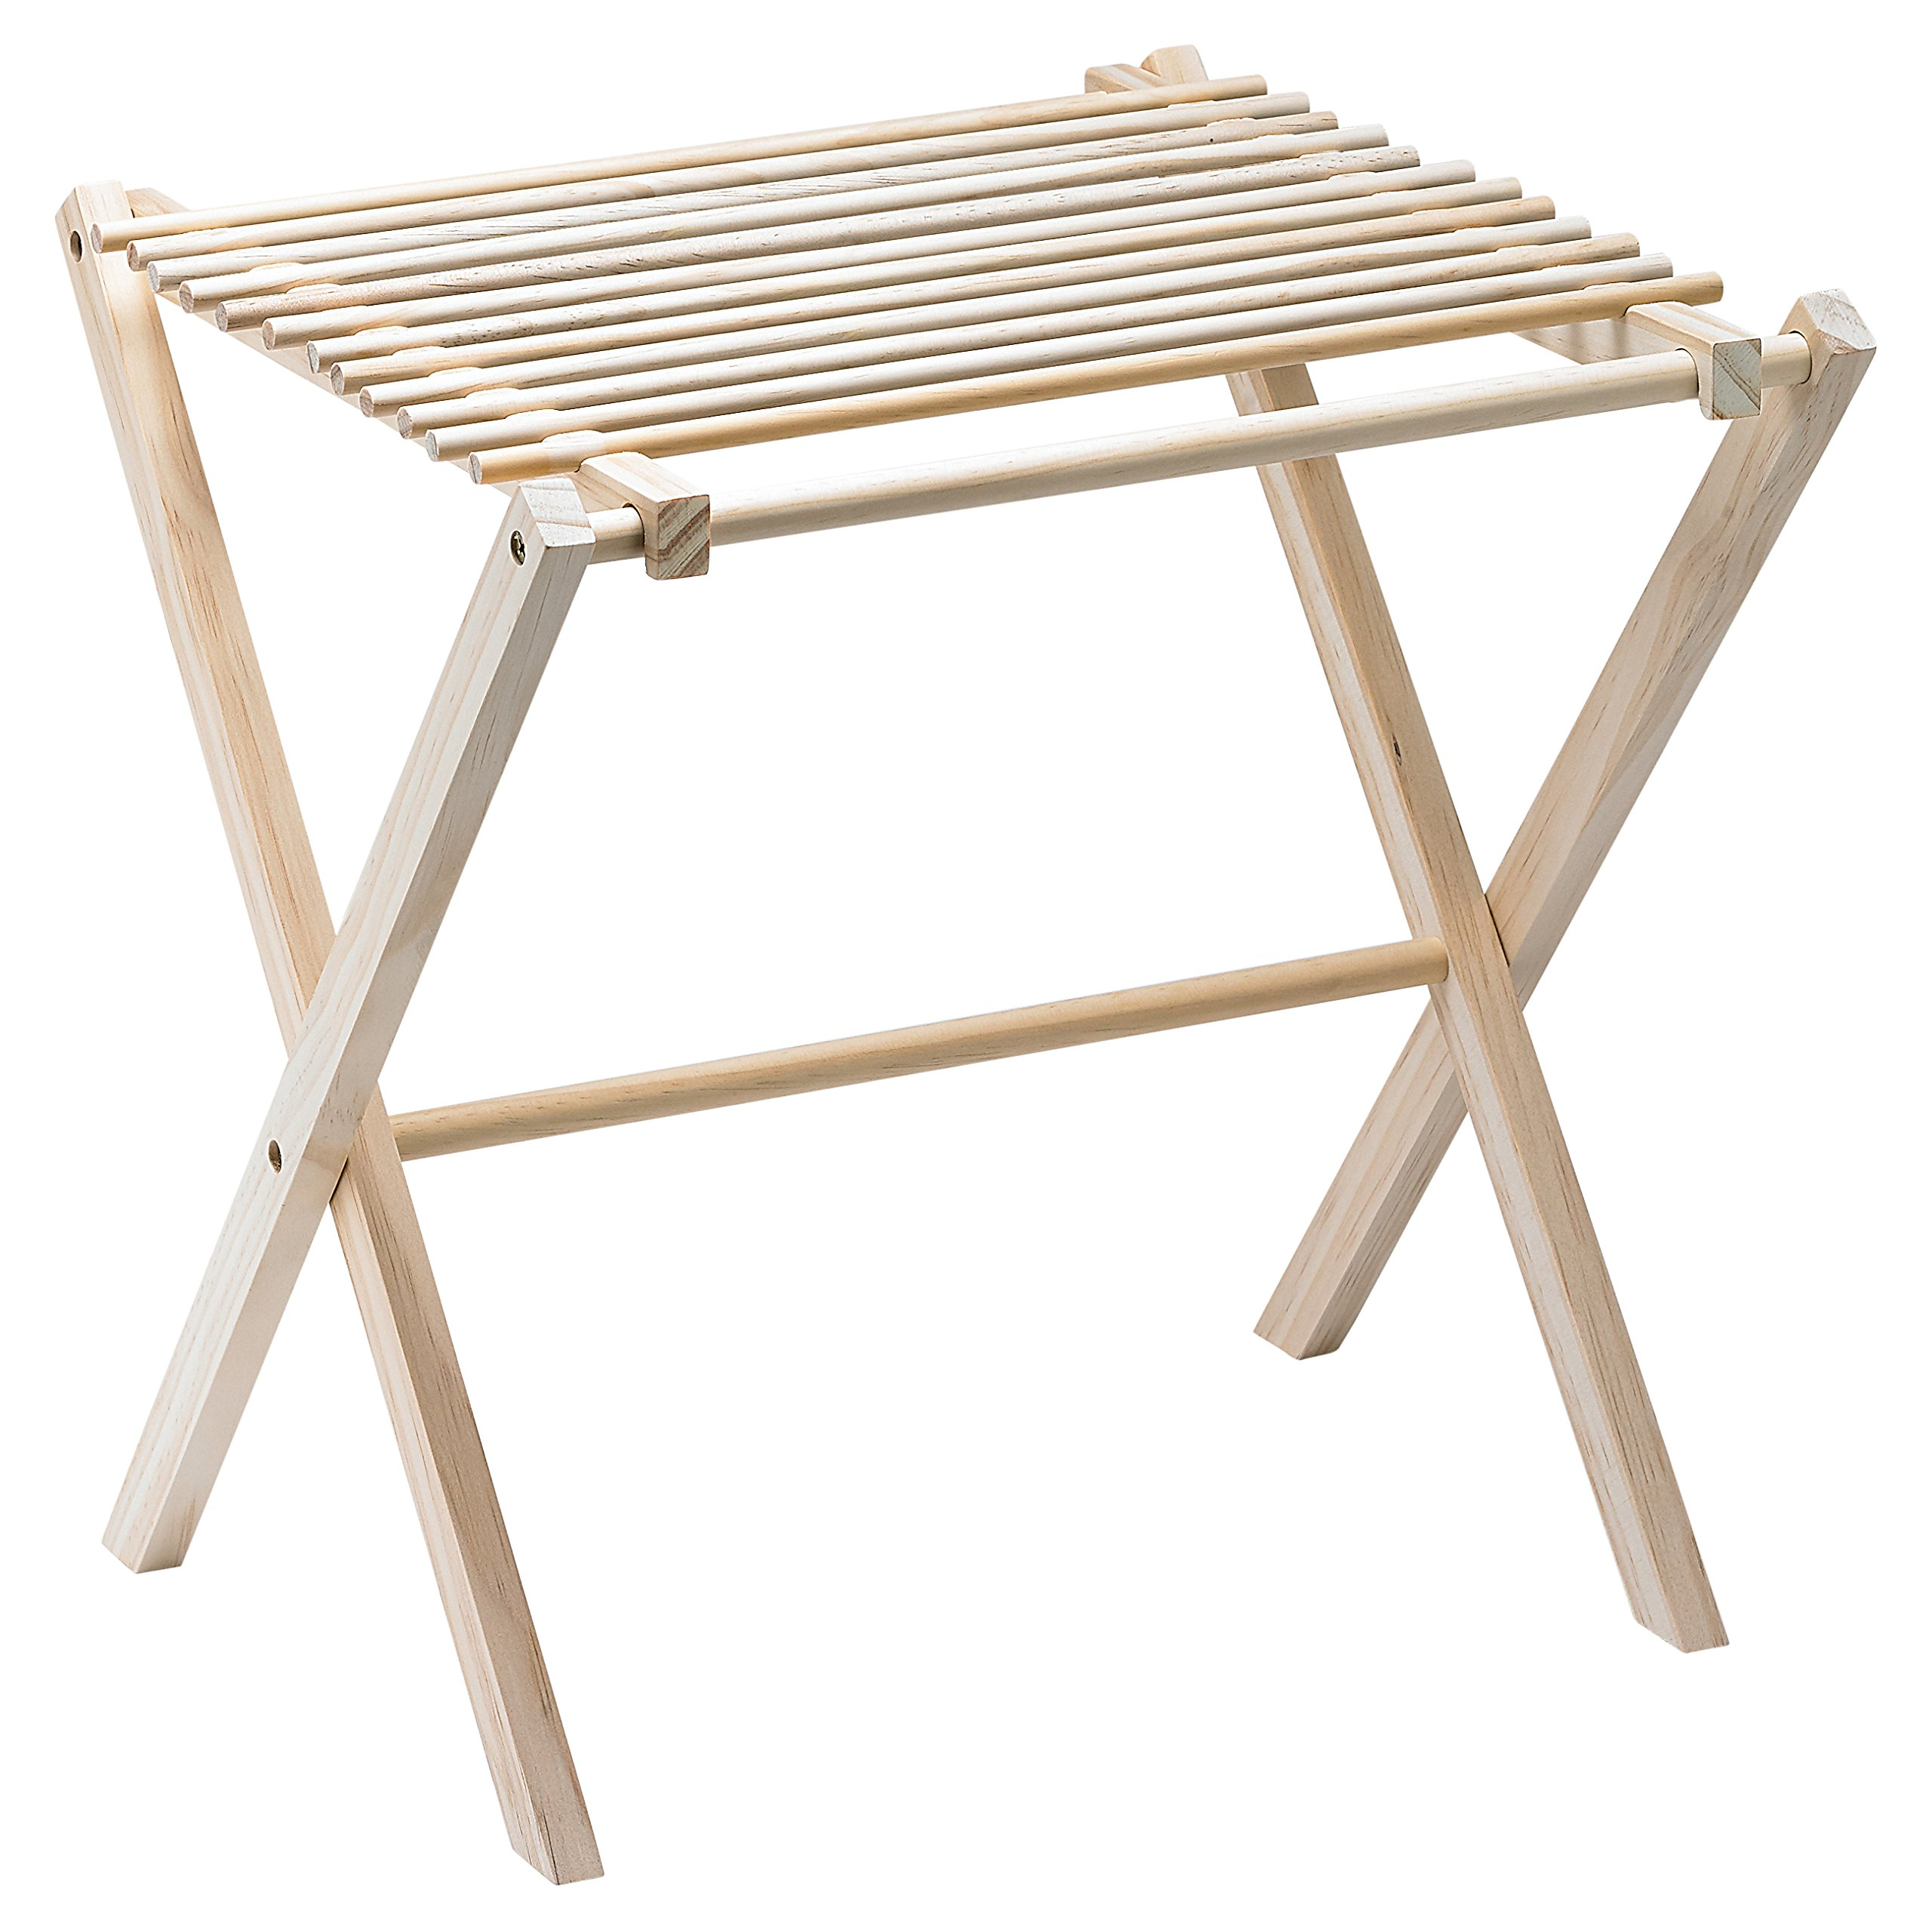 Fante's 43797 Collapsible Pasta and Noodle Drying Rack, Natural Wood, 14.5 x 16 x 15-Inches, The Italian Market Original Since 1906 by Fante's